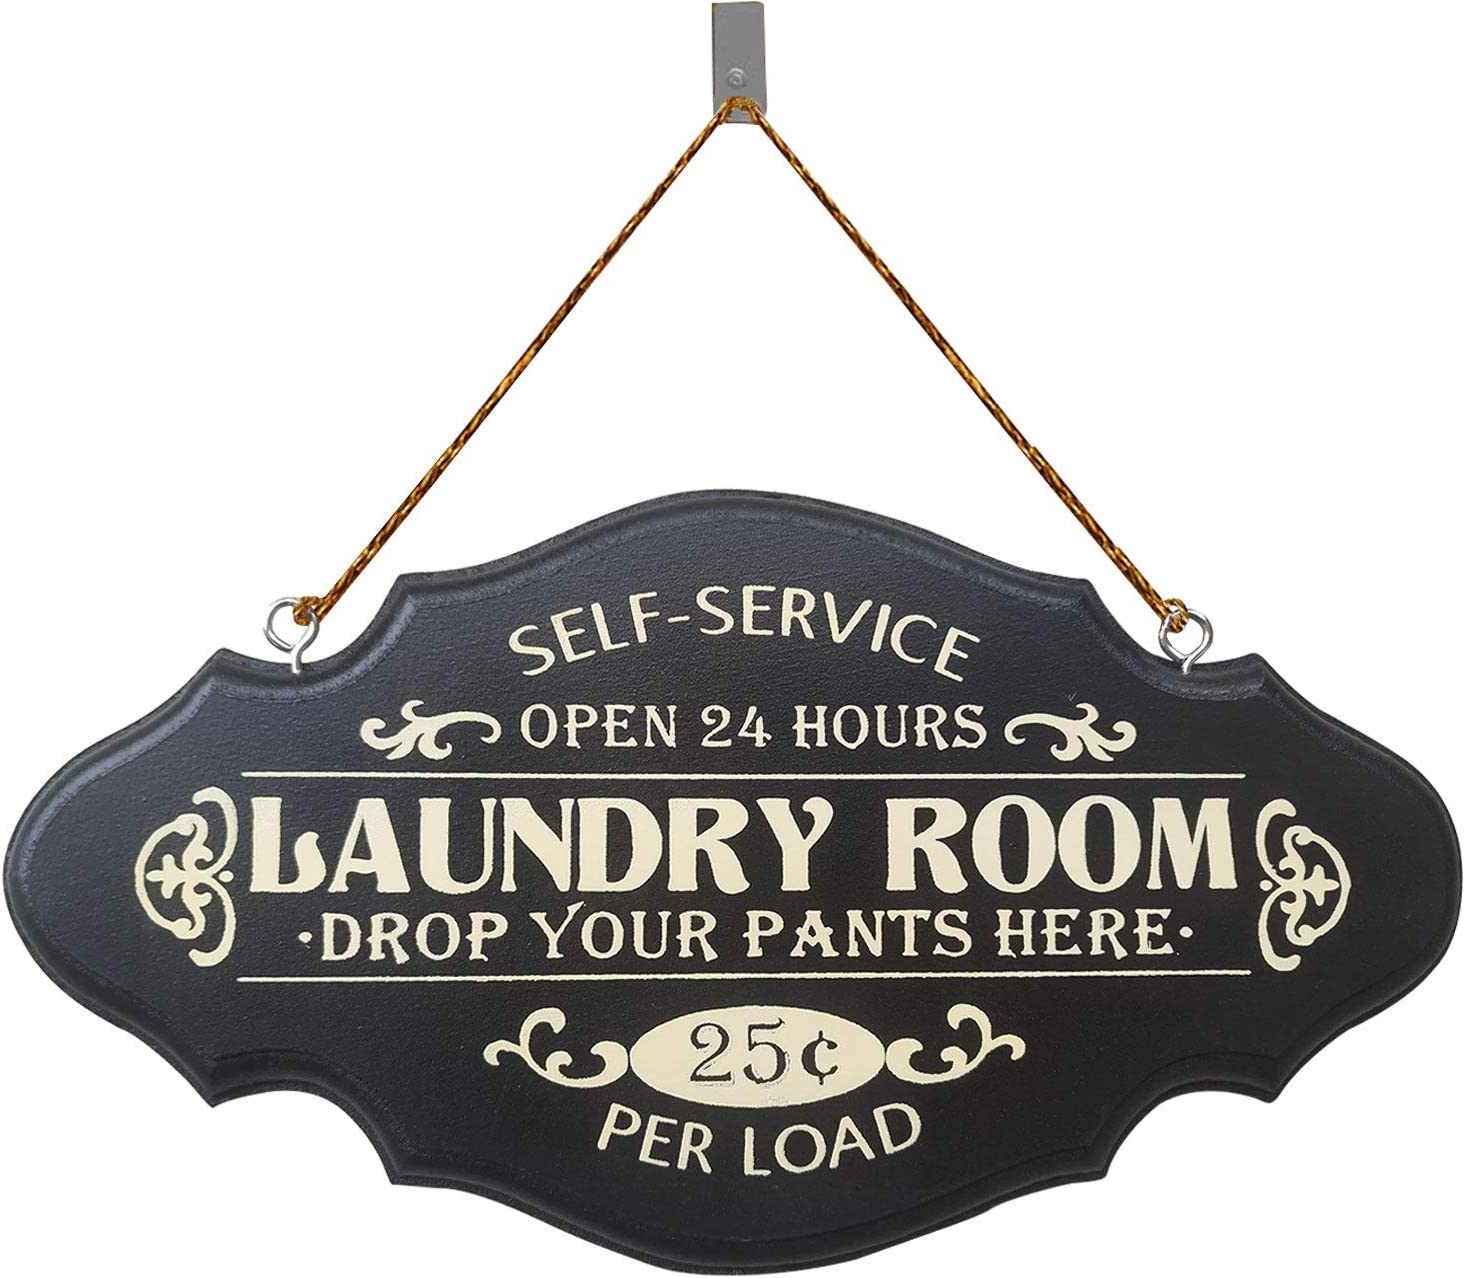 PXIYOU Rustic Laundry Room Wooden Sign Self Service Drop Your Pants Here Wood Wall Hanging Sign Plaque Home Decor Black 6X11Inch